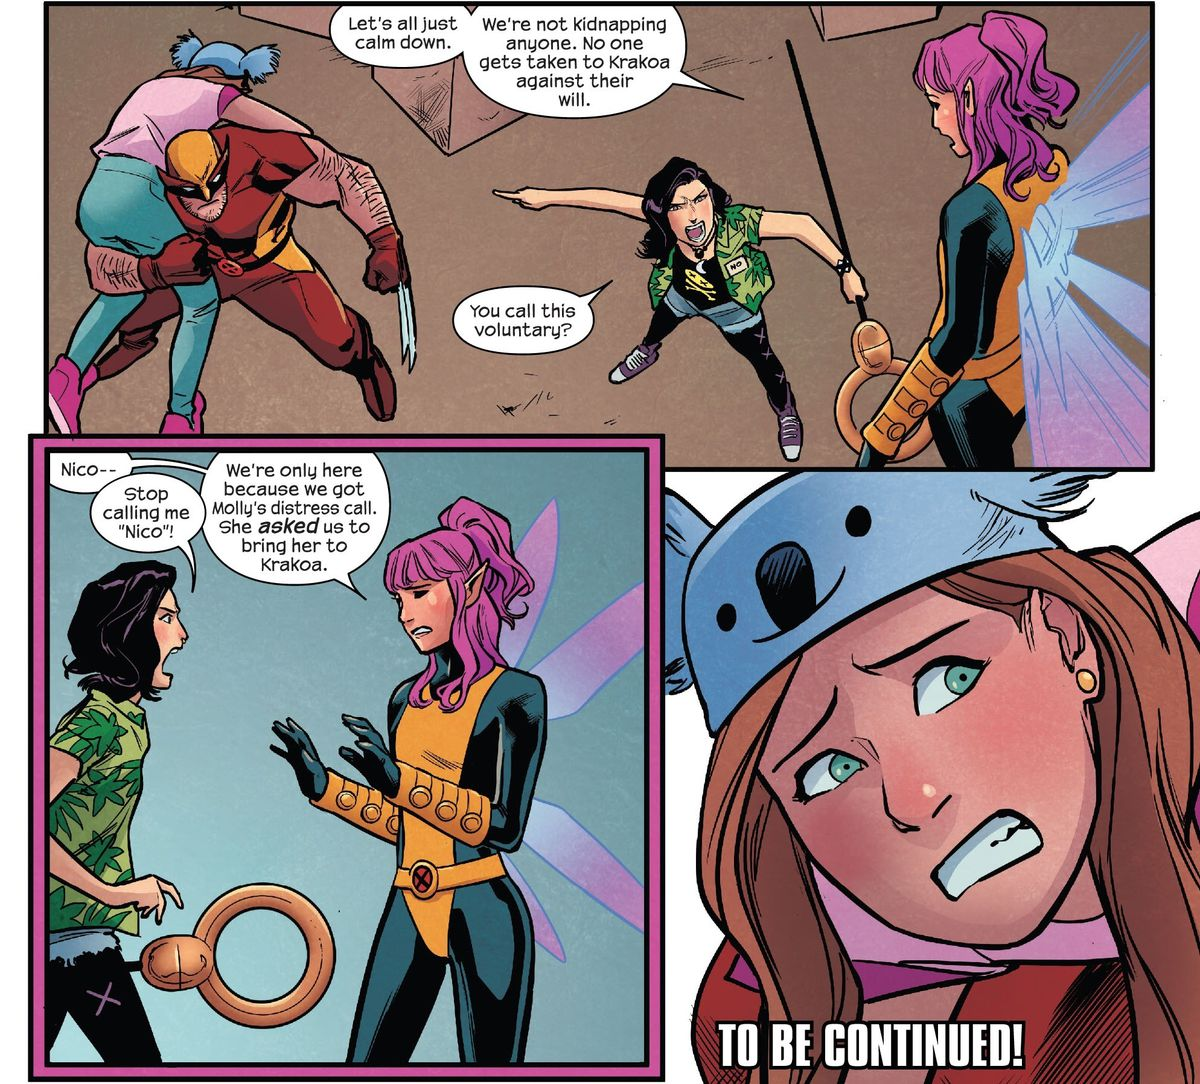 """The Runaways fight Wolverine and Pixie to a standstill to keep them from taking Molly to Krakoa against her will. Pixie exclaims """"We're only here because we got Molly's distress call. She asked us to bring her to Krakoa,"""" in Runaways #33, Marvel Comics (2021)."""